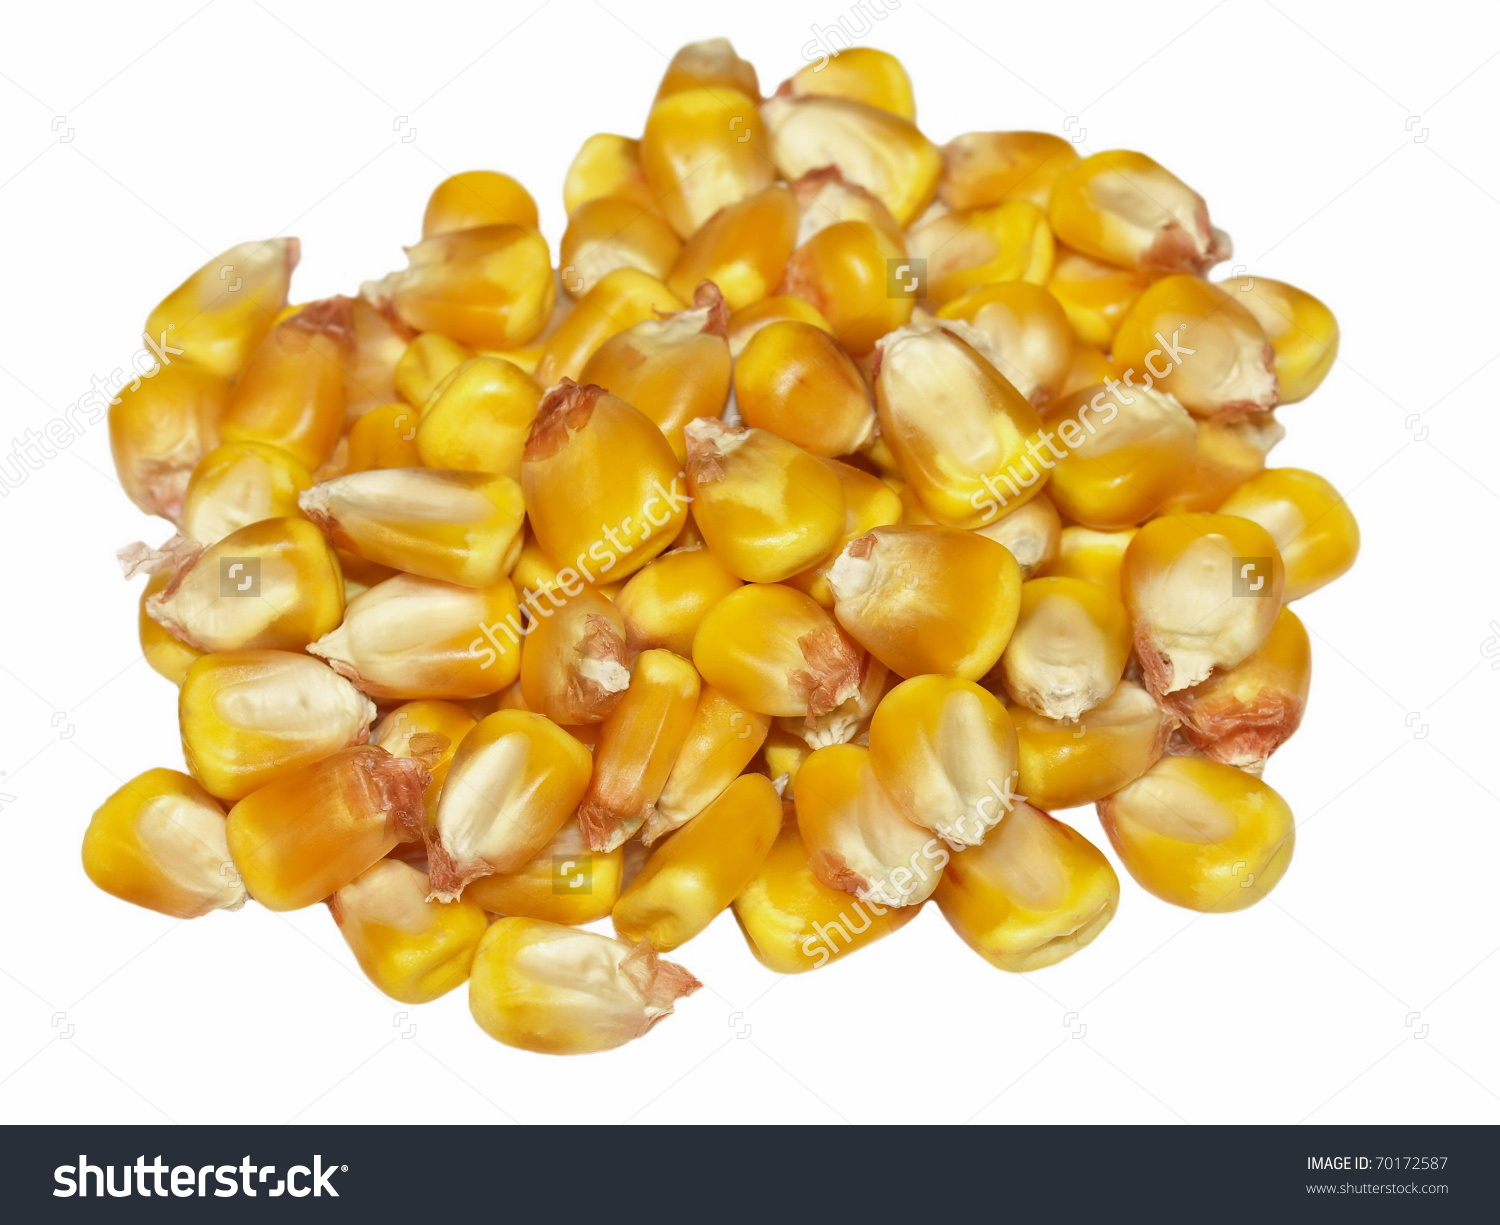 Maize variety clipart #10